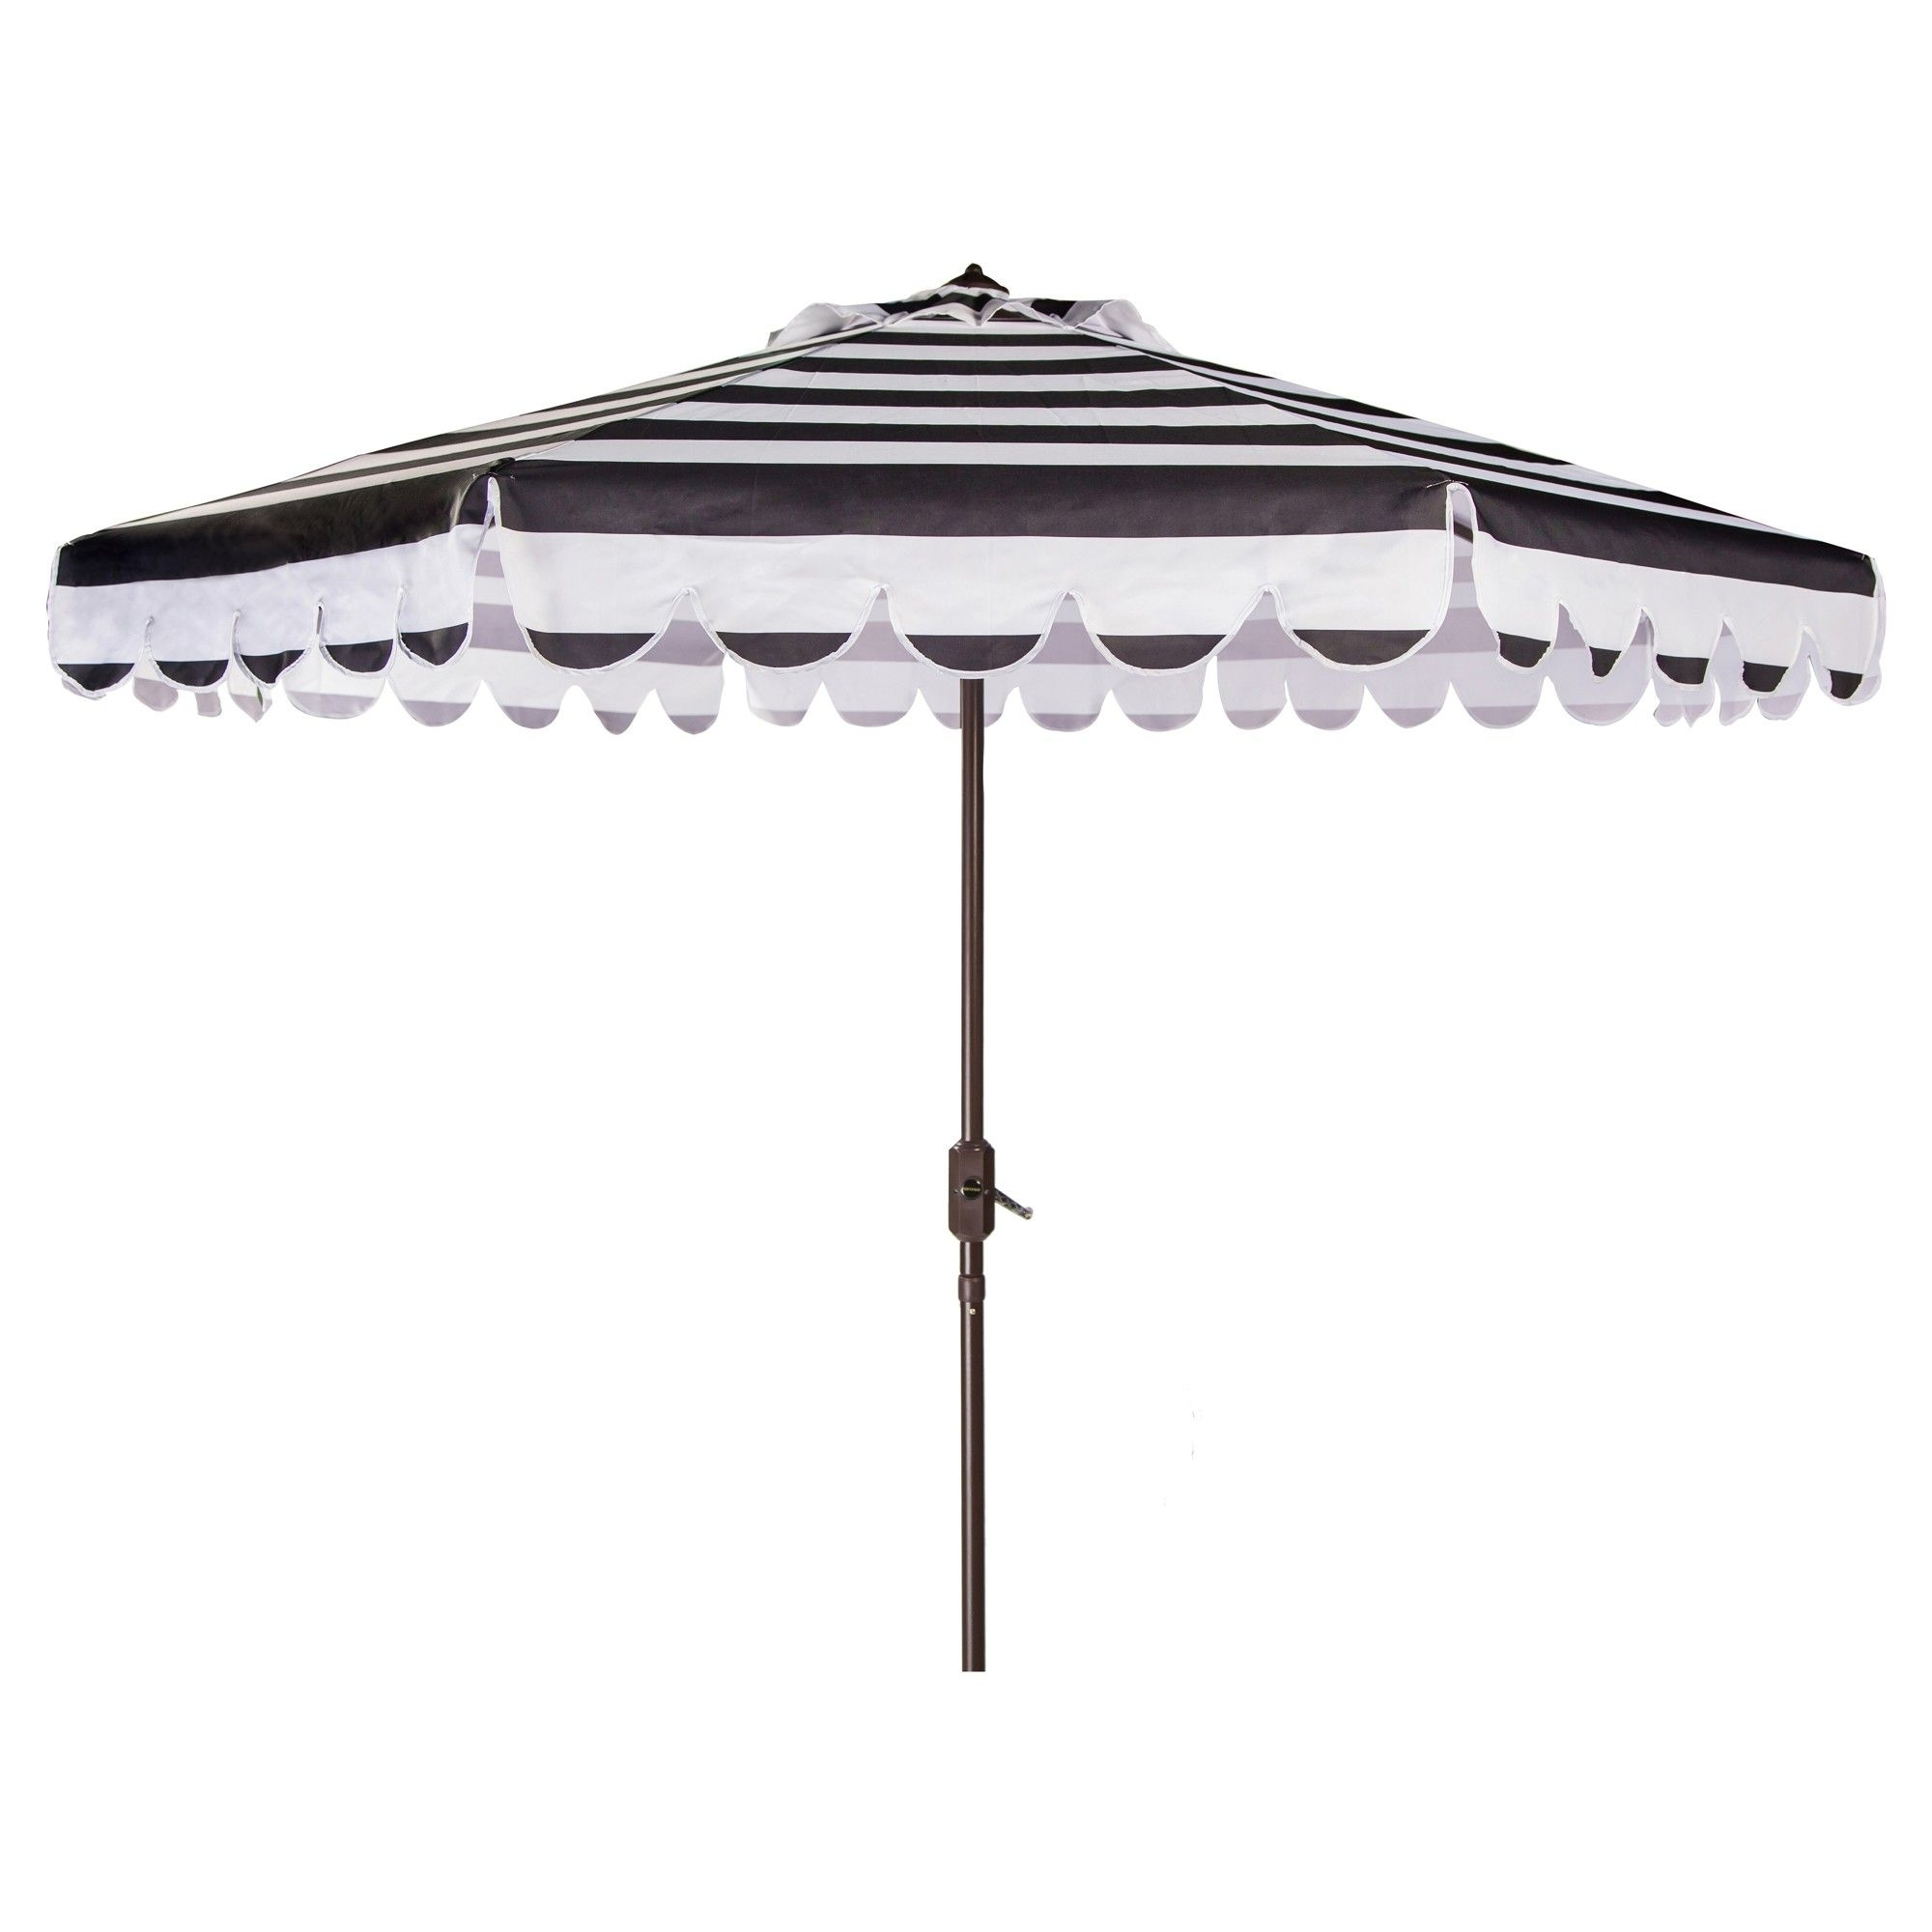 Maui Single Scallop Striped 9' Crank Auto Tilt Umbrella – Black With Popular Black And White Striped Patio Umbrellas (View 9 of 20)